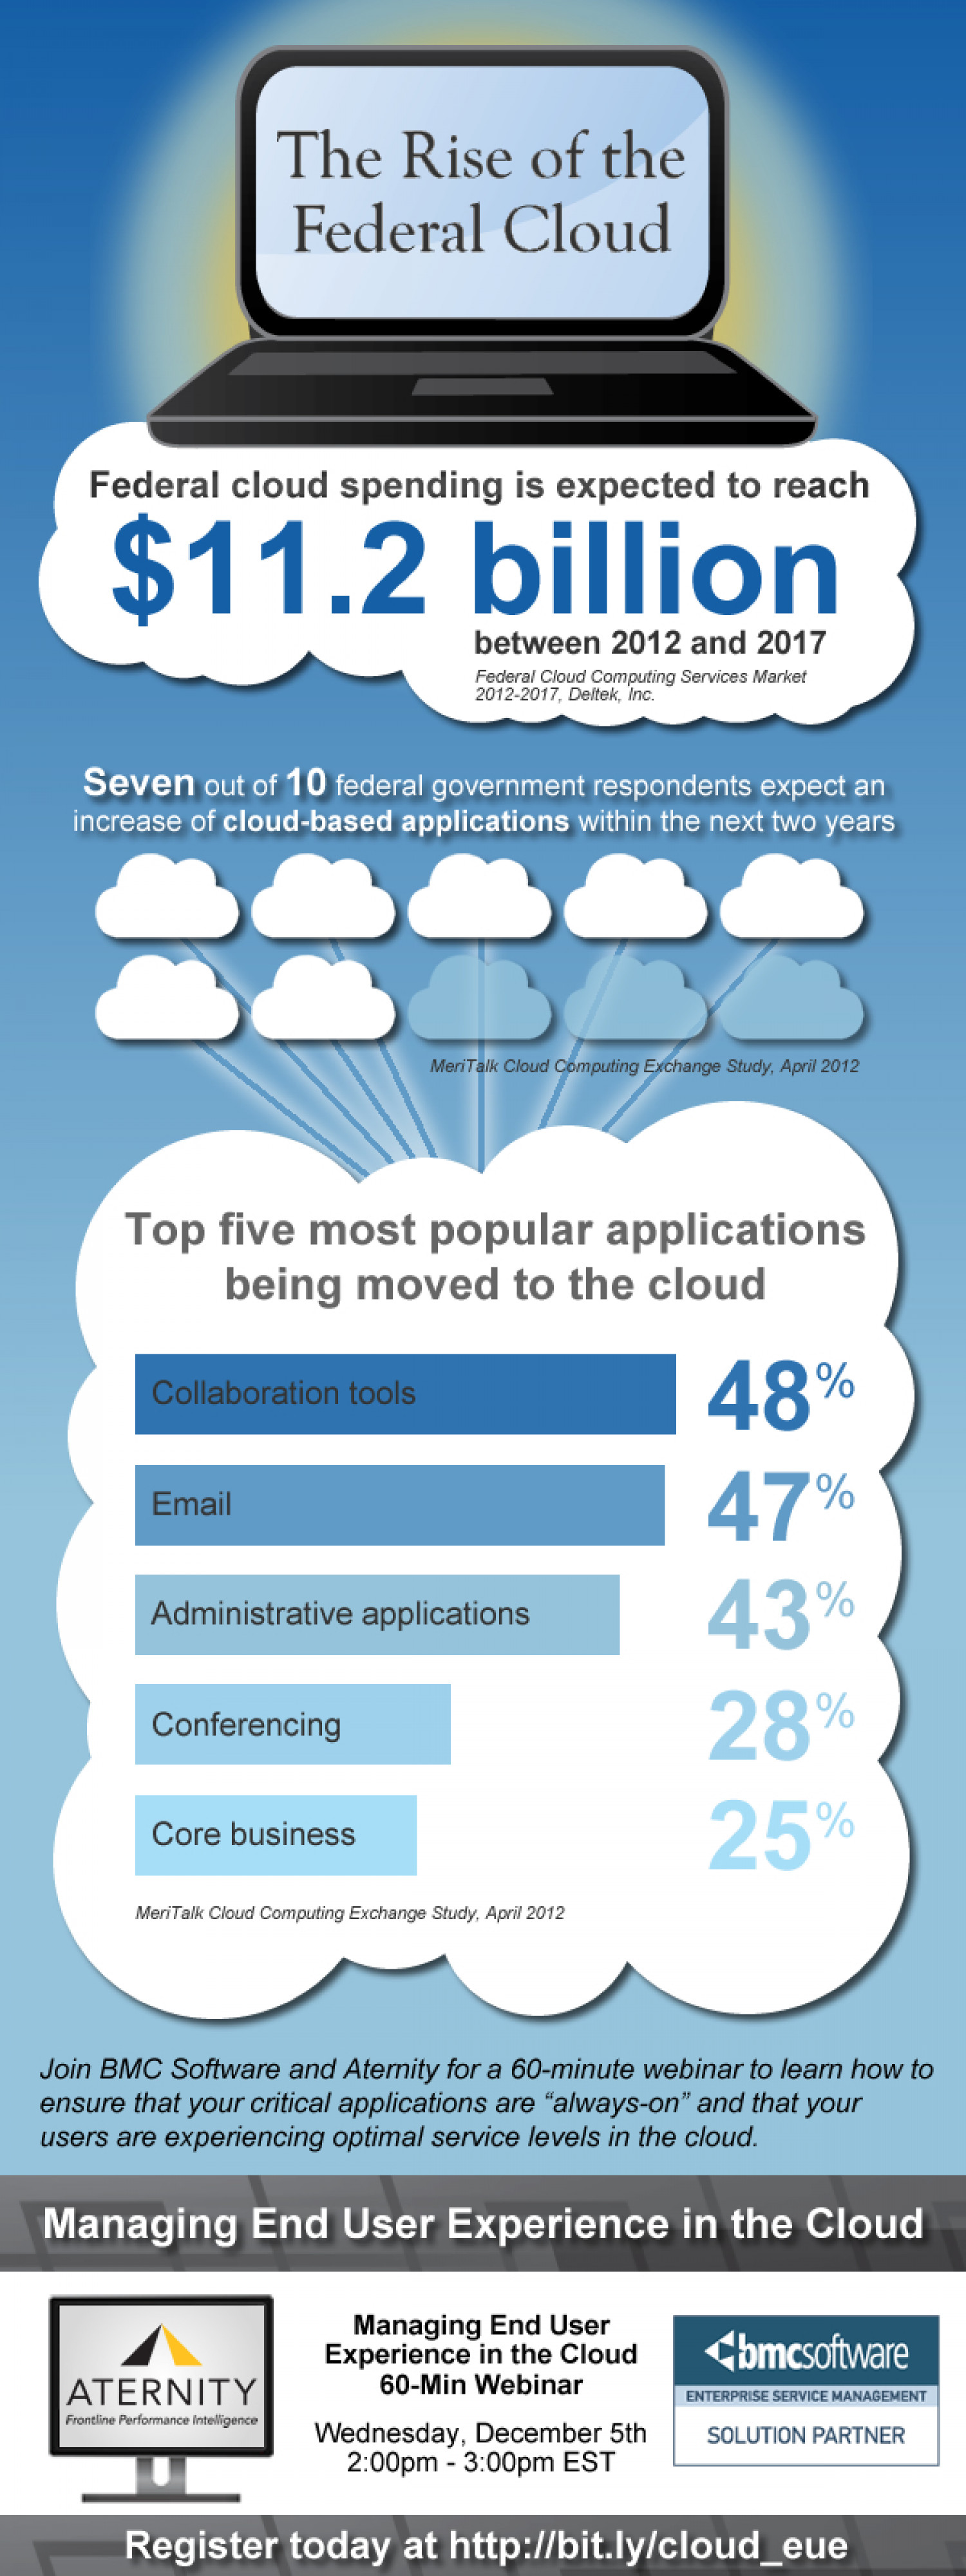 The Rise of the Federal Cloud Infographic